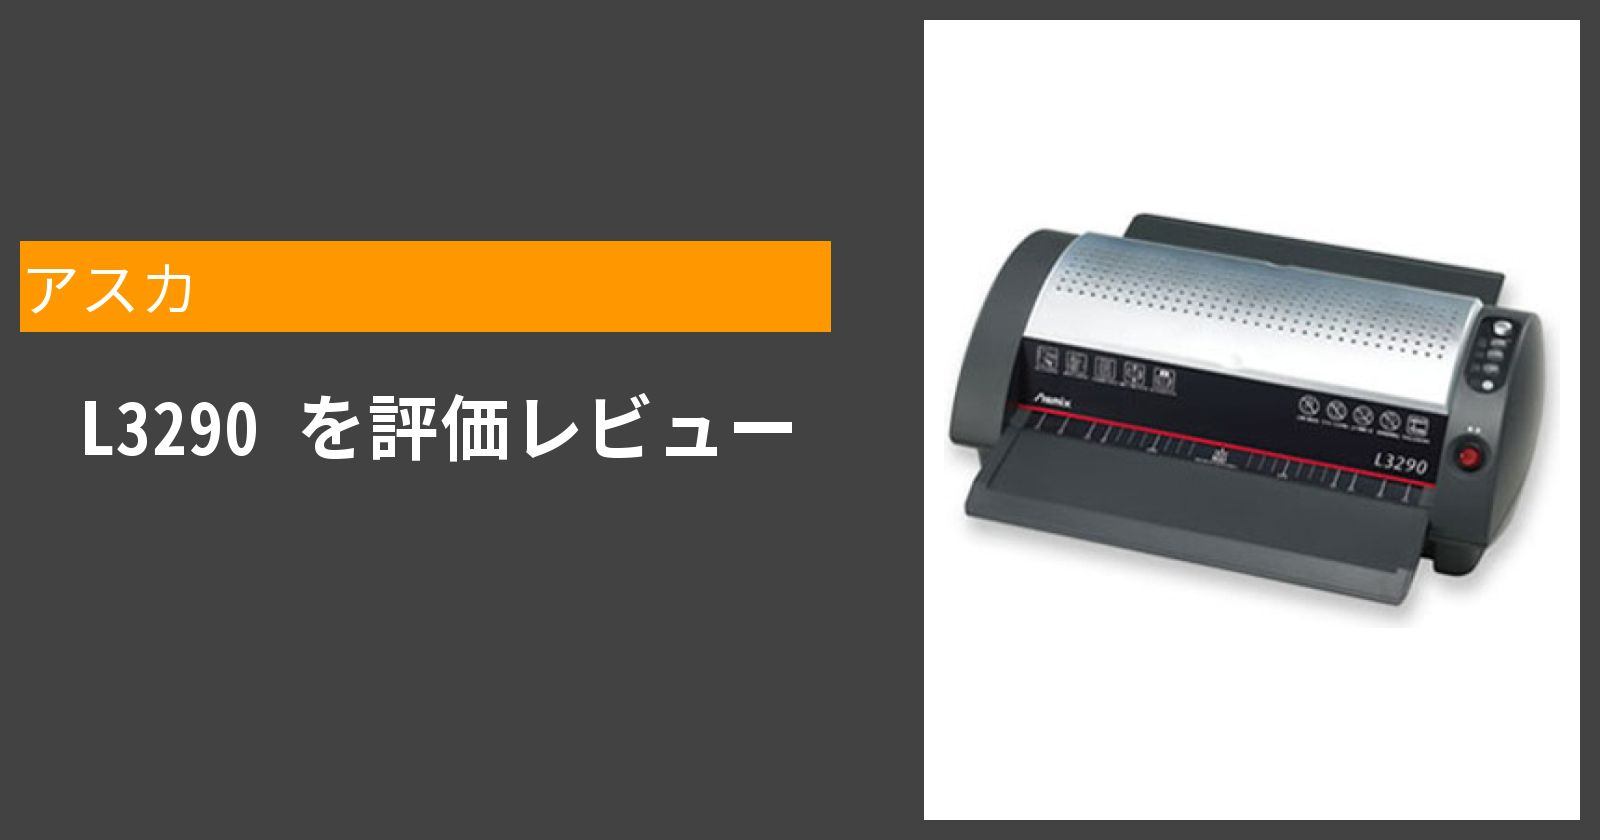 L3290を徹底評価